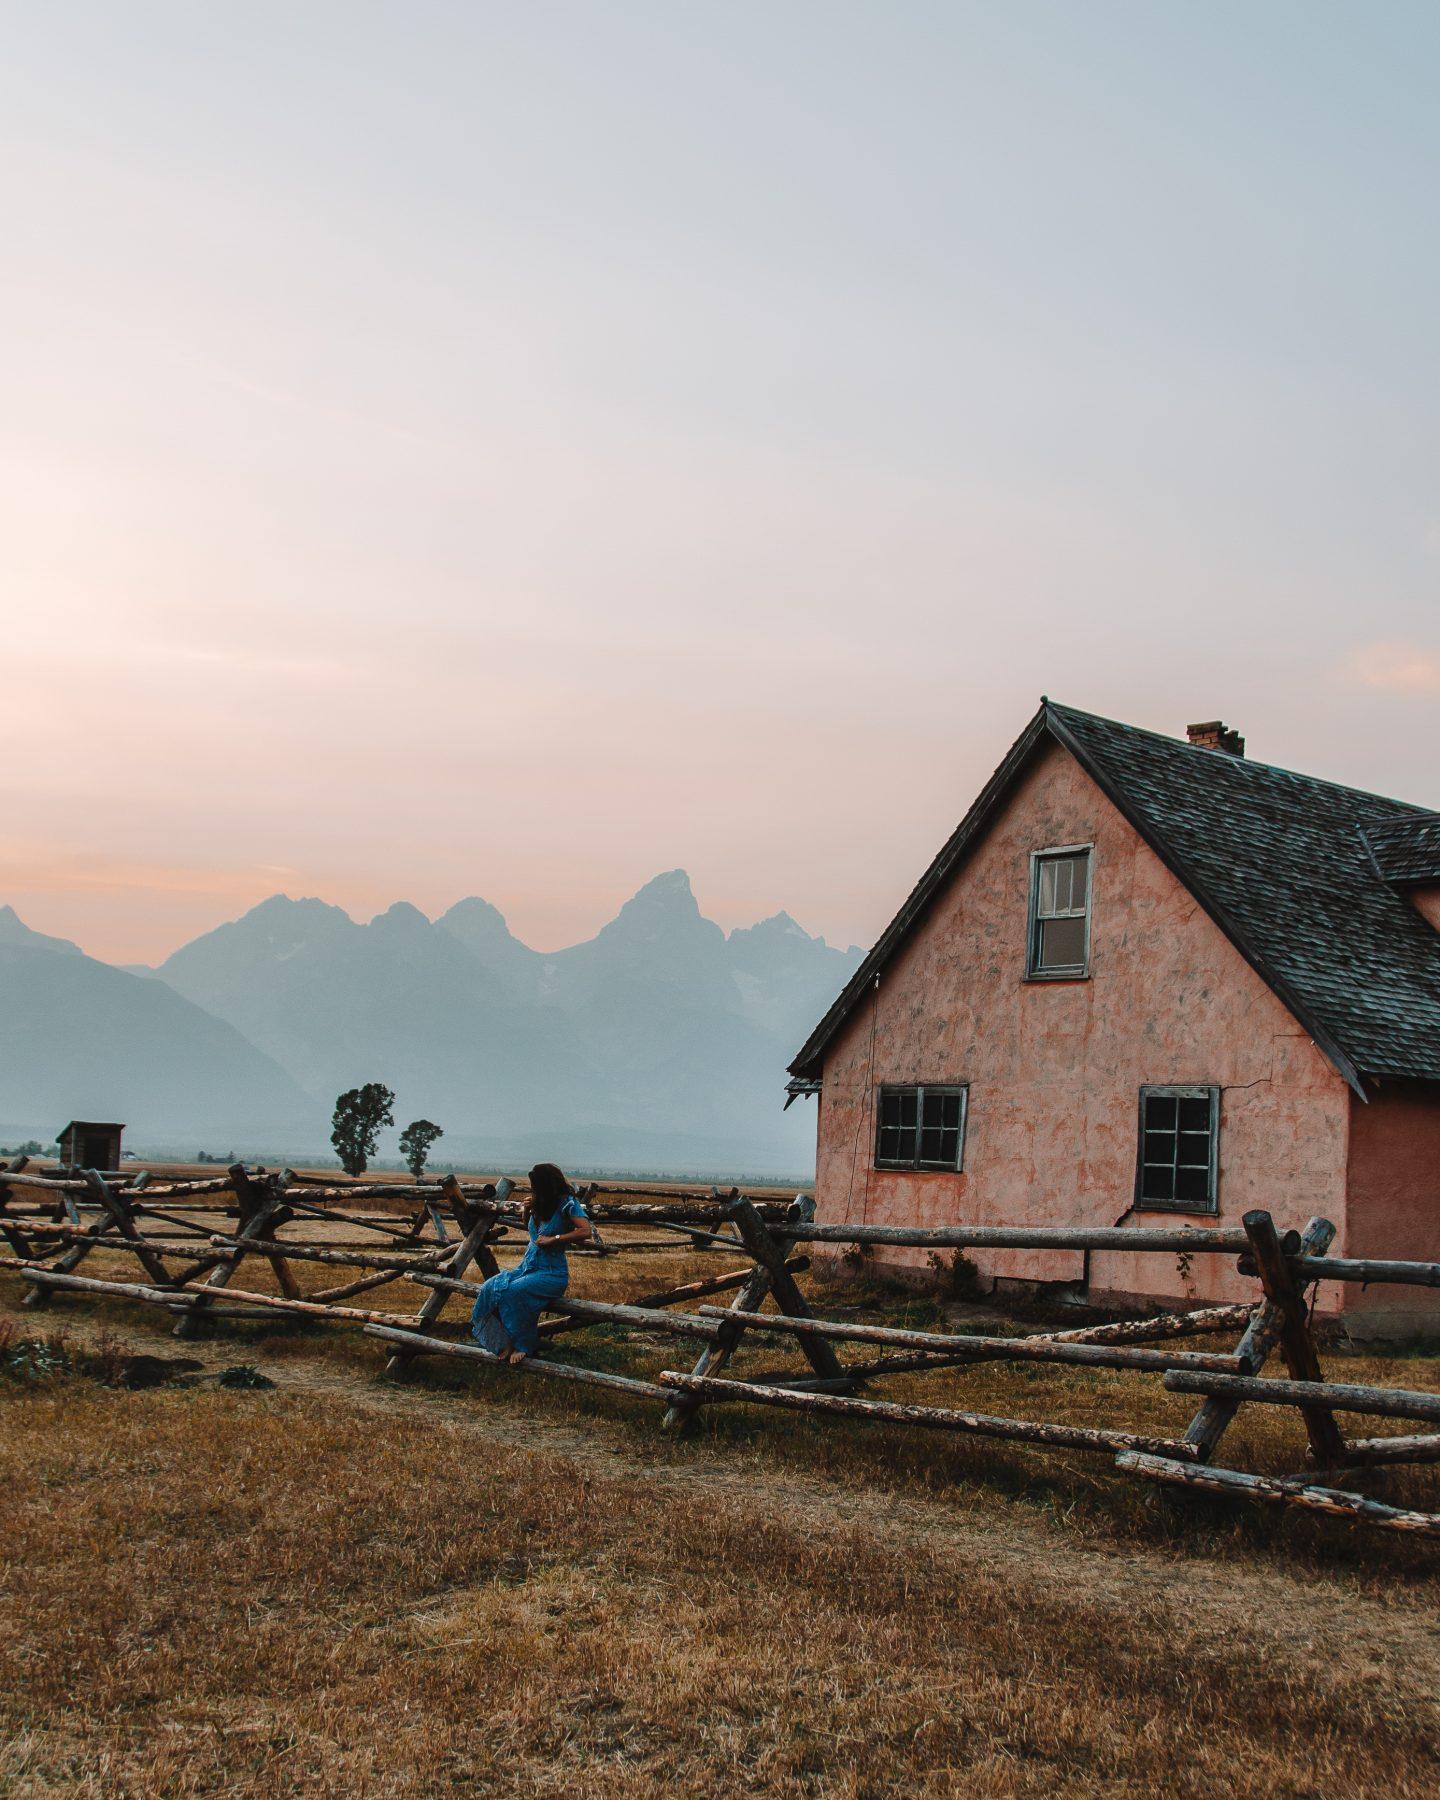 mormon row at sunset with girl